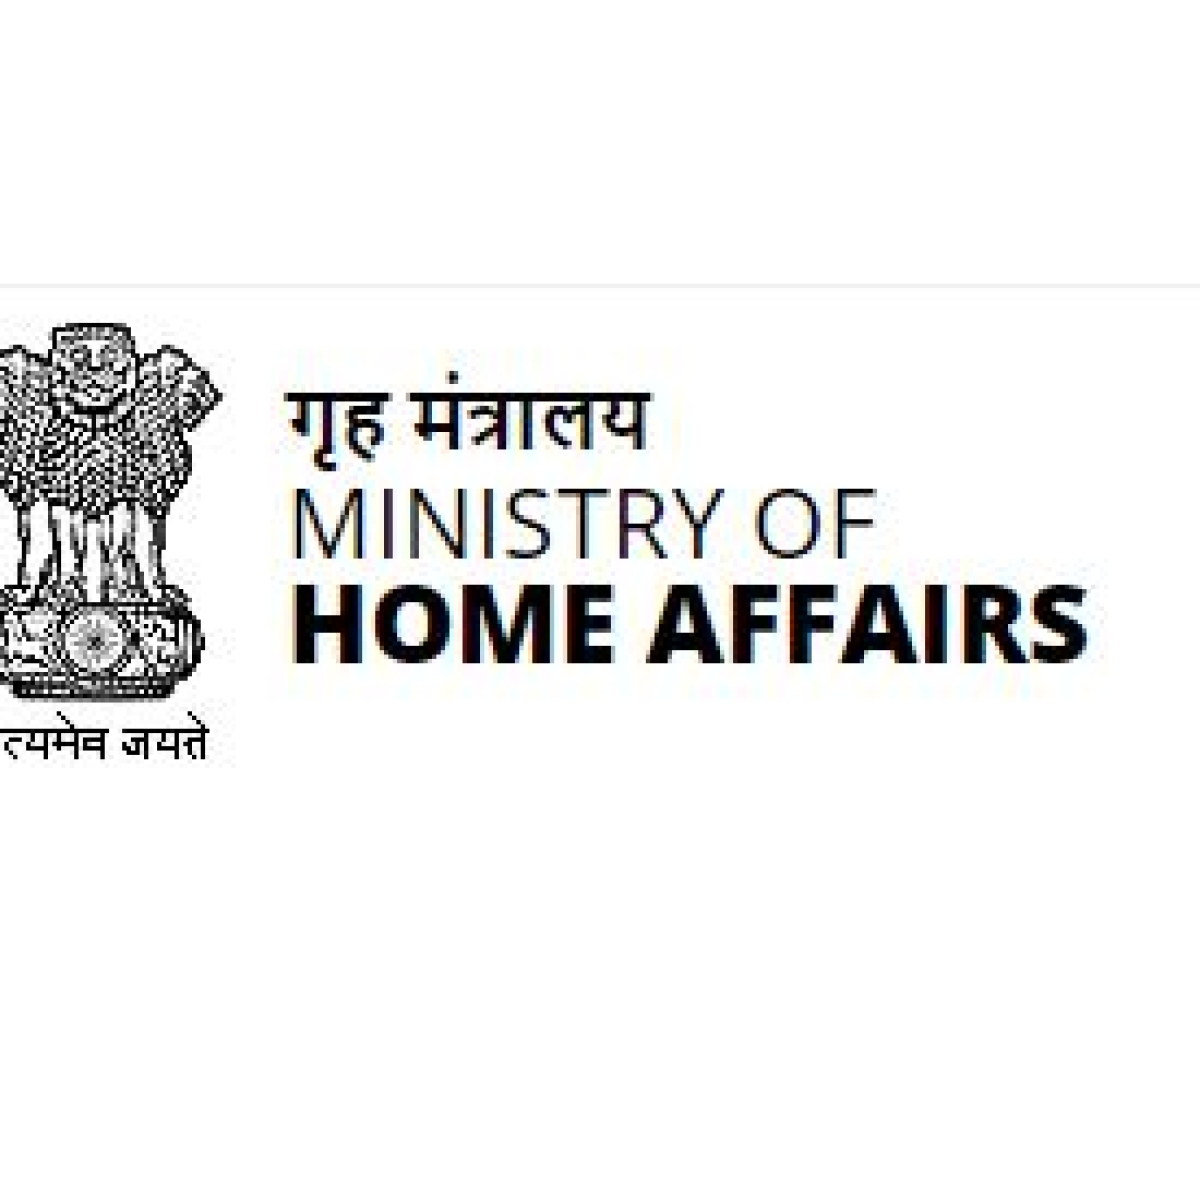 Ministry of Home Affairs allows political gathering in poll bound states before Oct 15